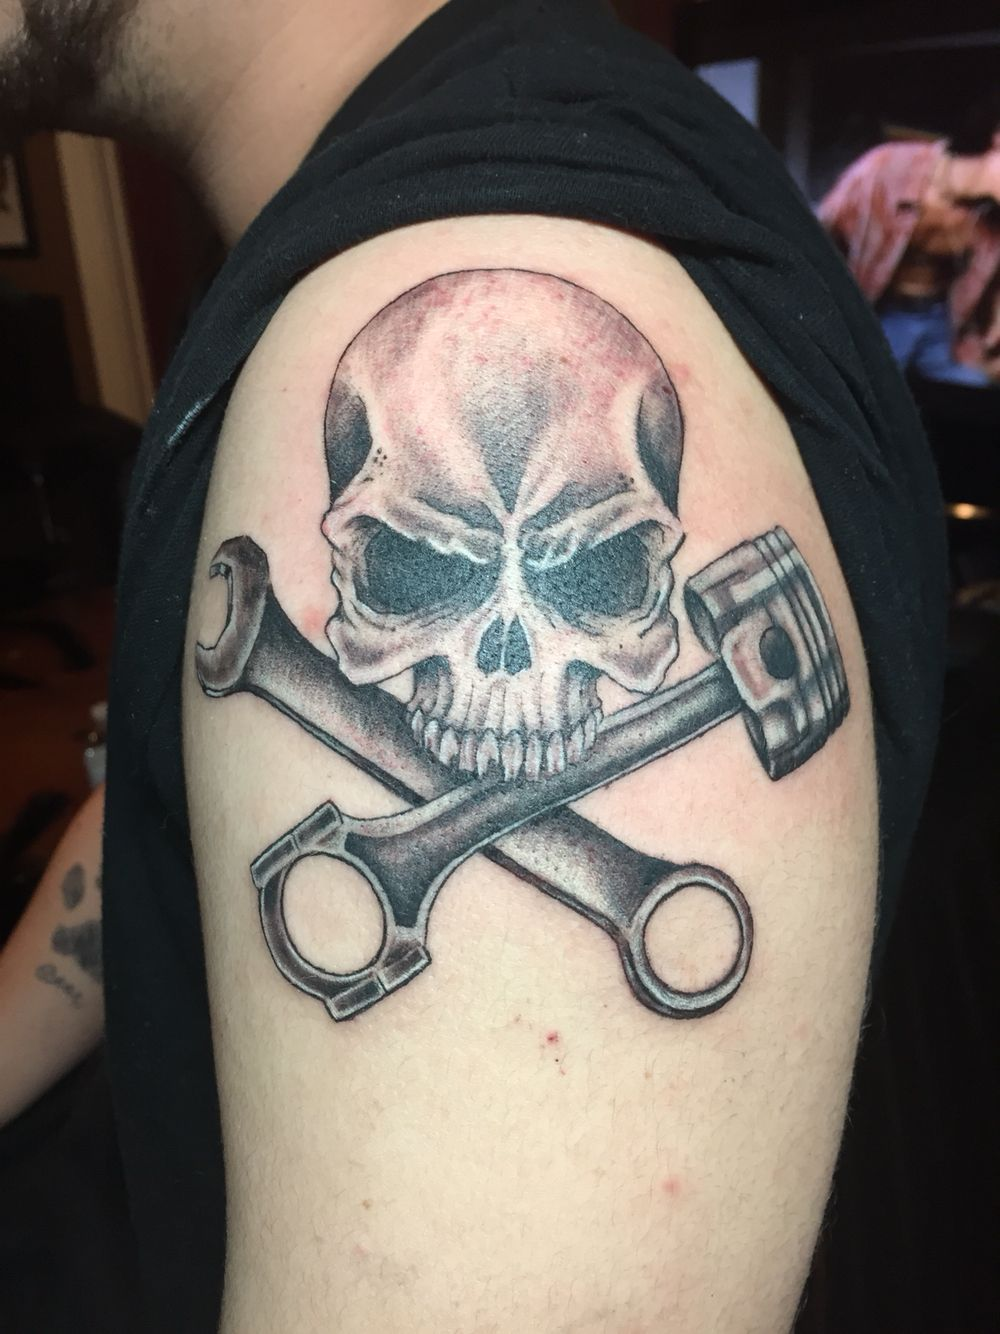 Skull piston and wrench tattoo by audrey mello my art for Skull piston tattoo